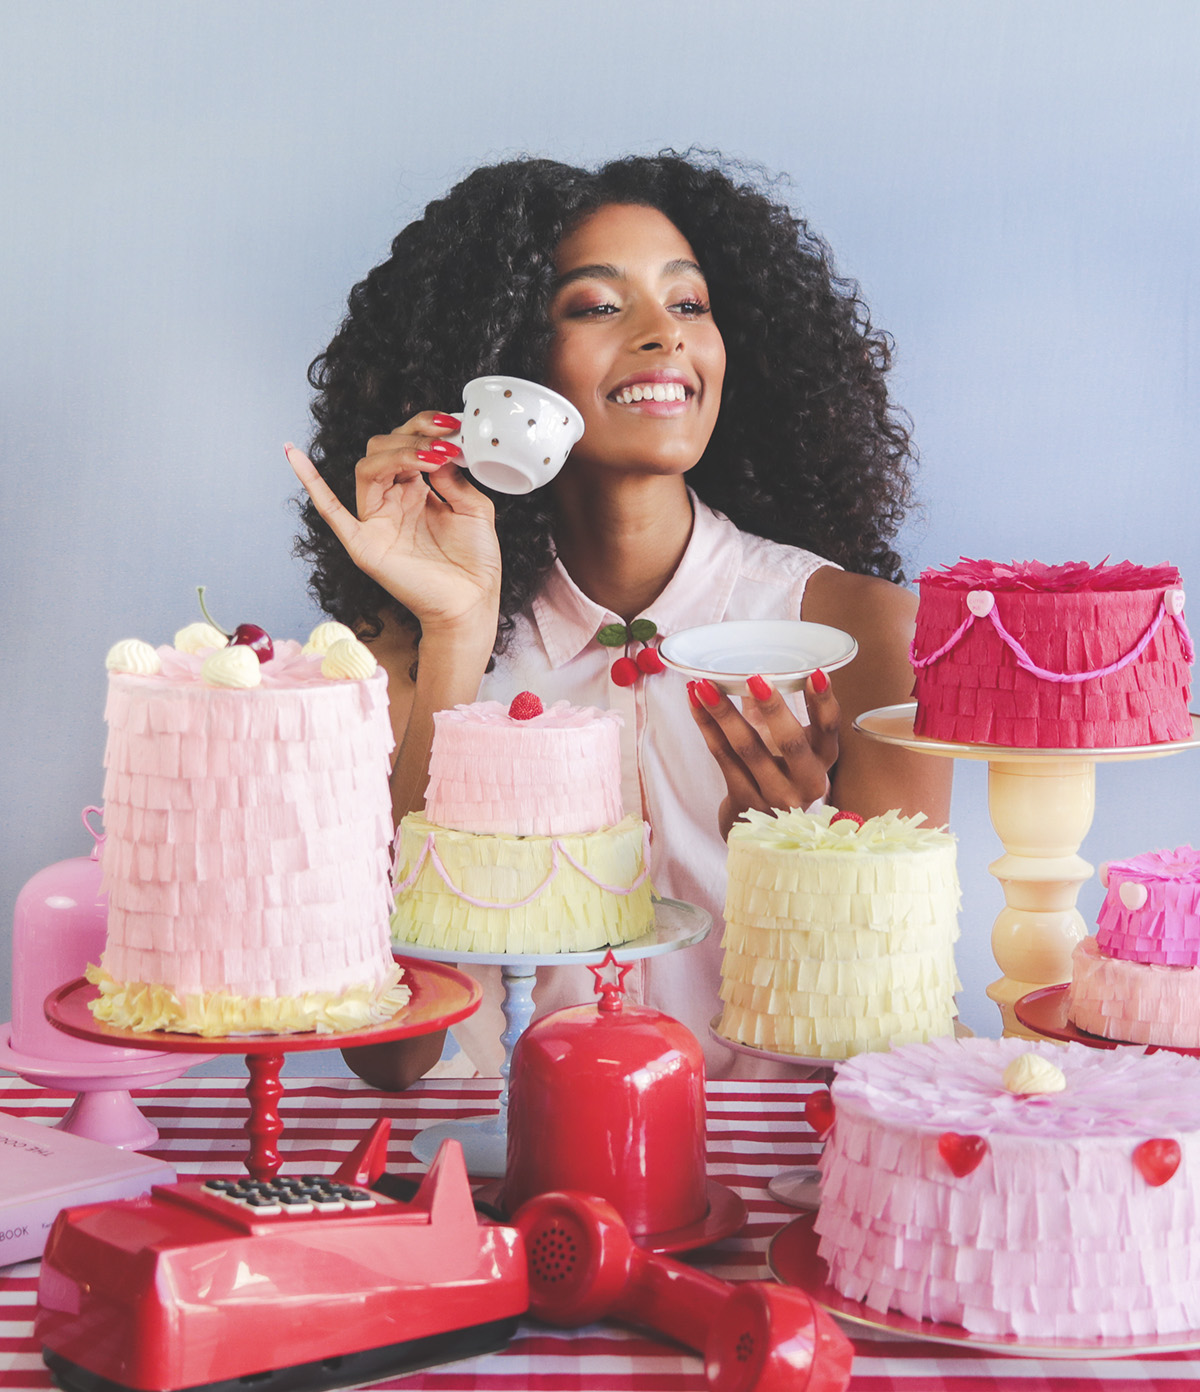 selfcare selftime retro valentines cake pinata dinner shooting editorial